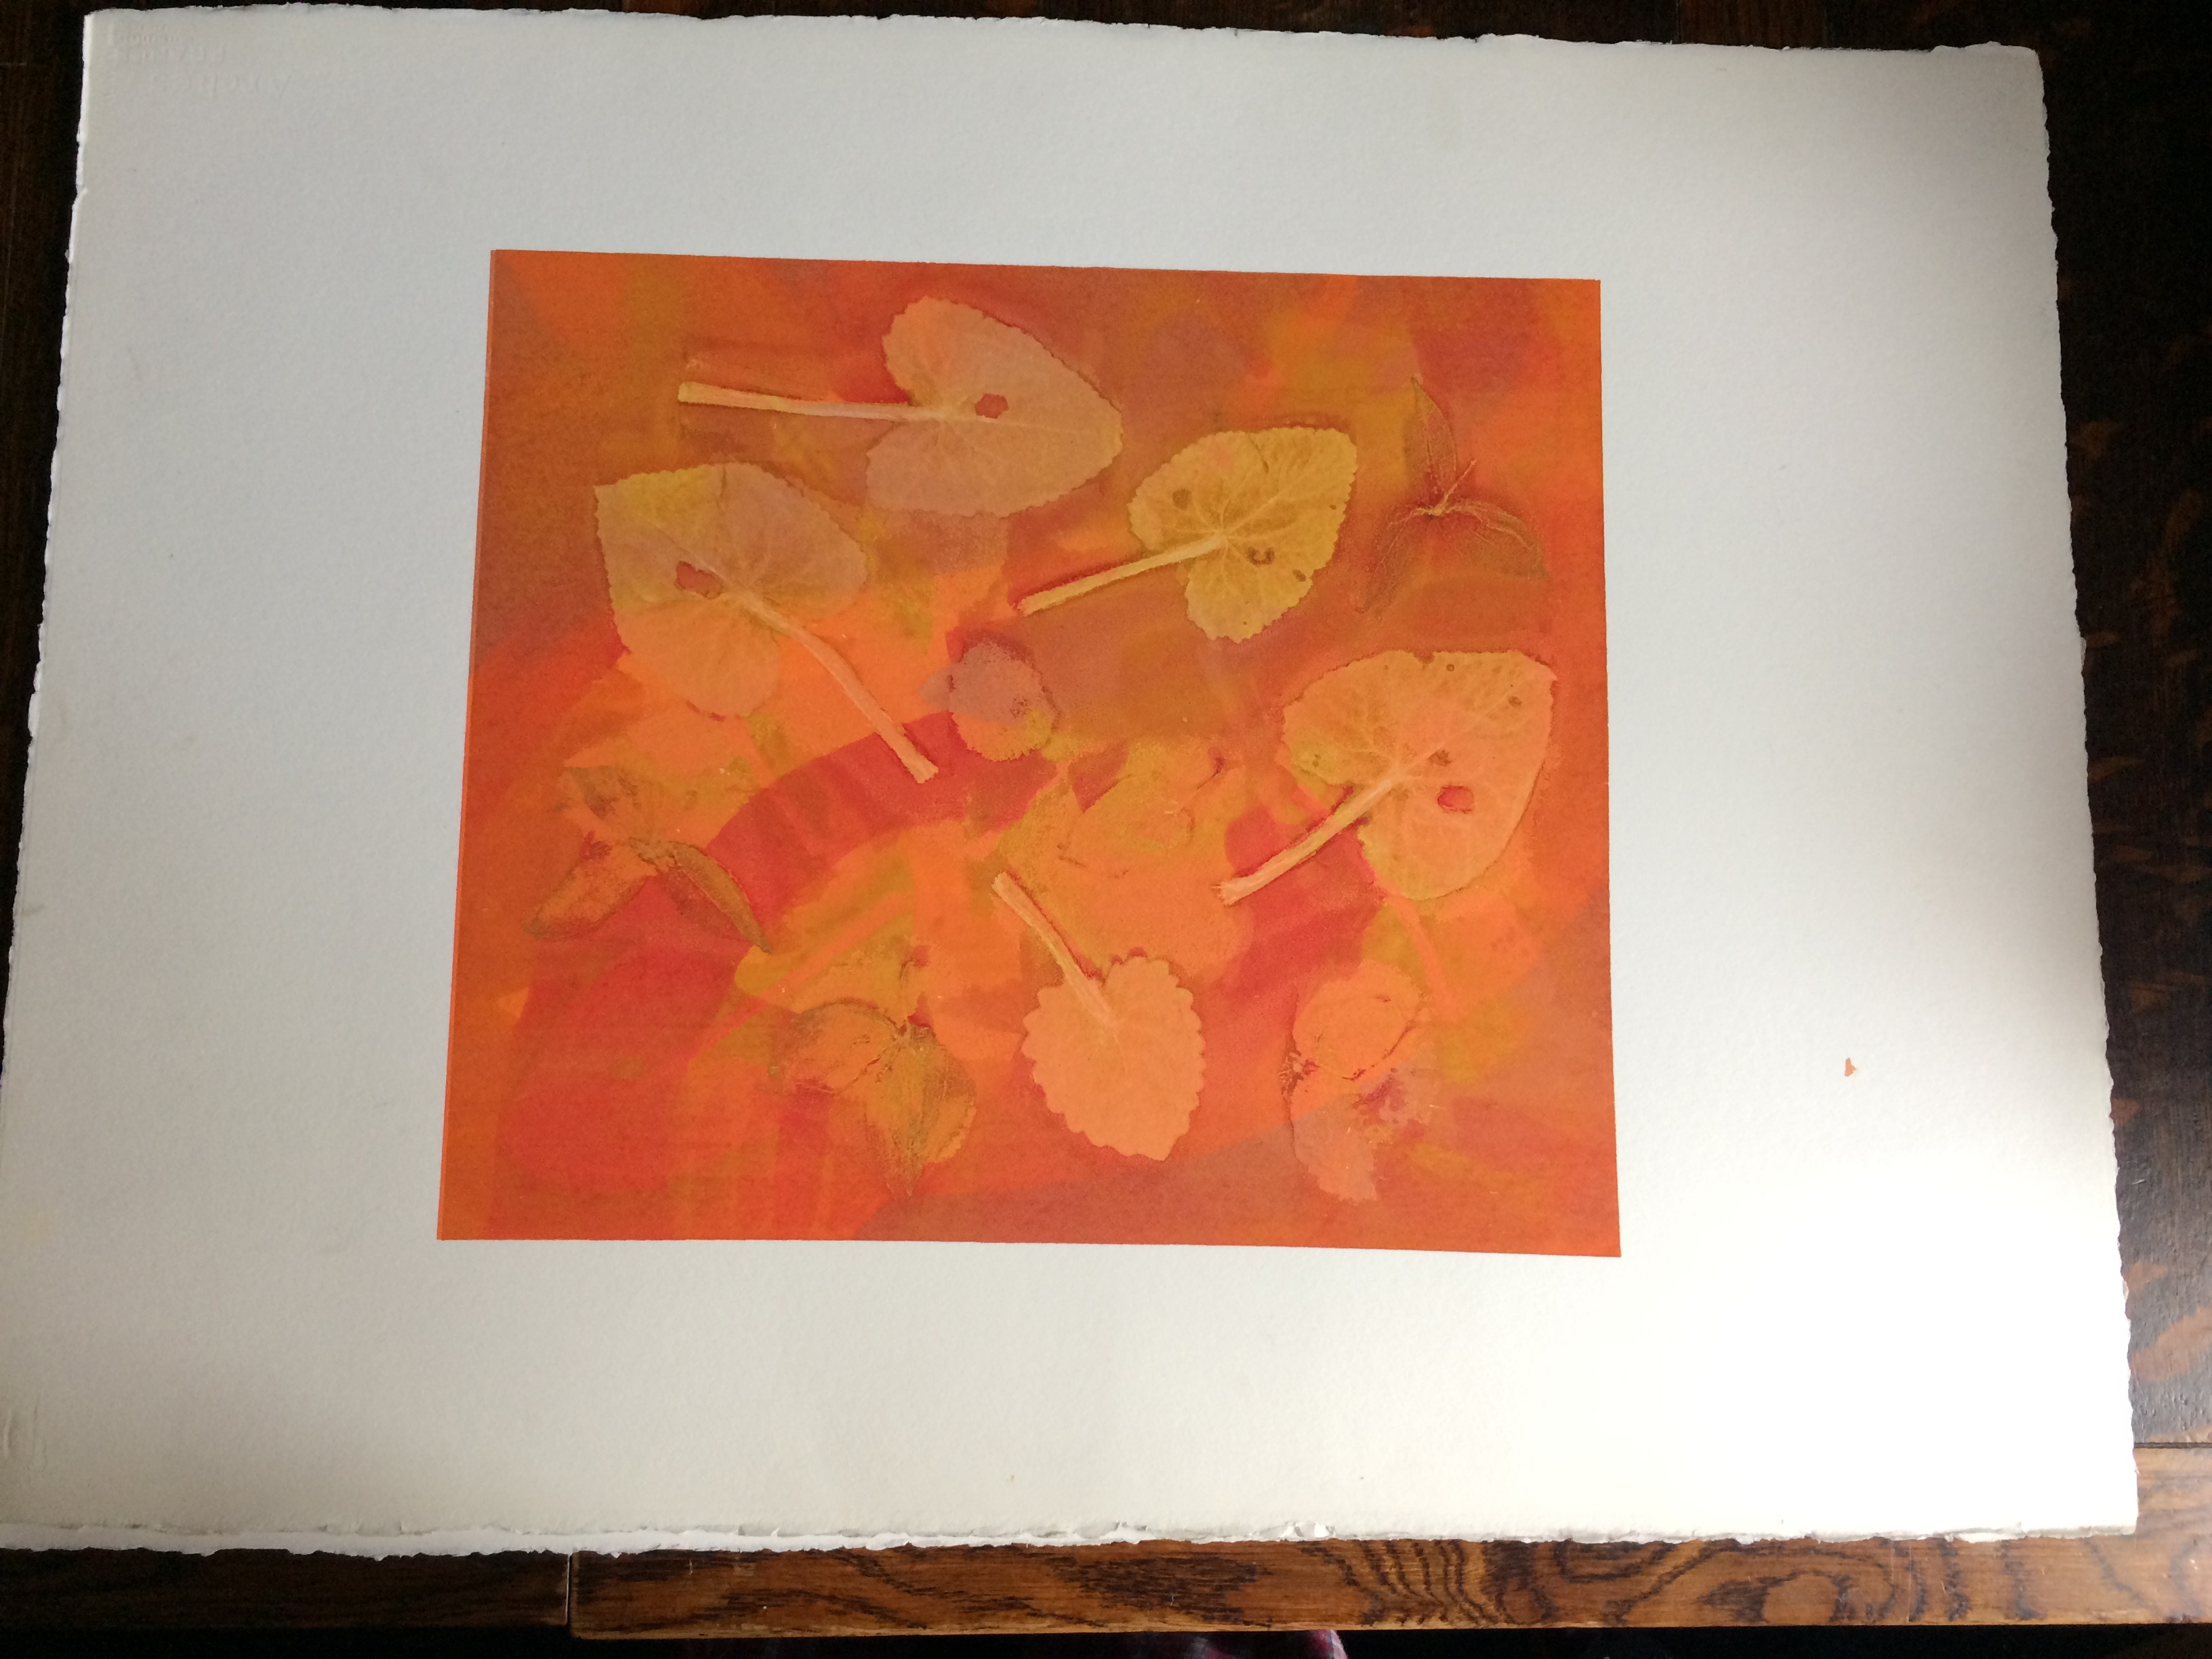 063 Orange Leaves 47 x 38